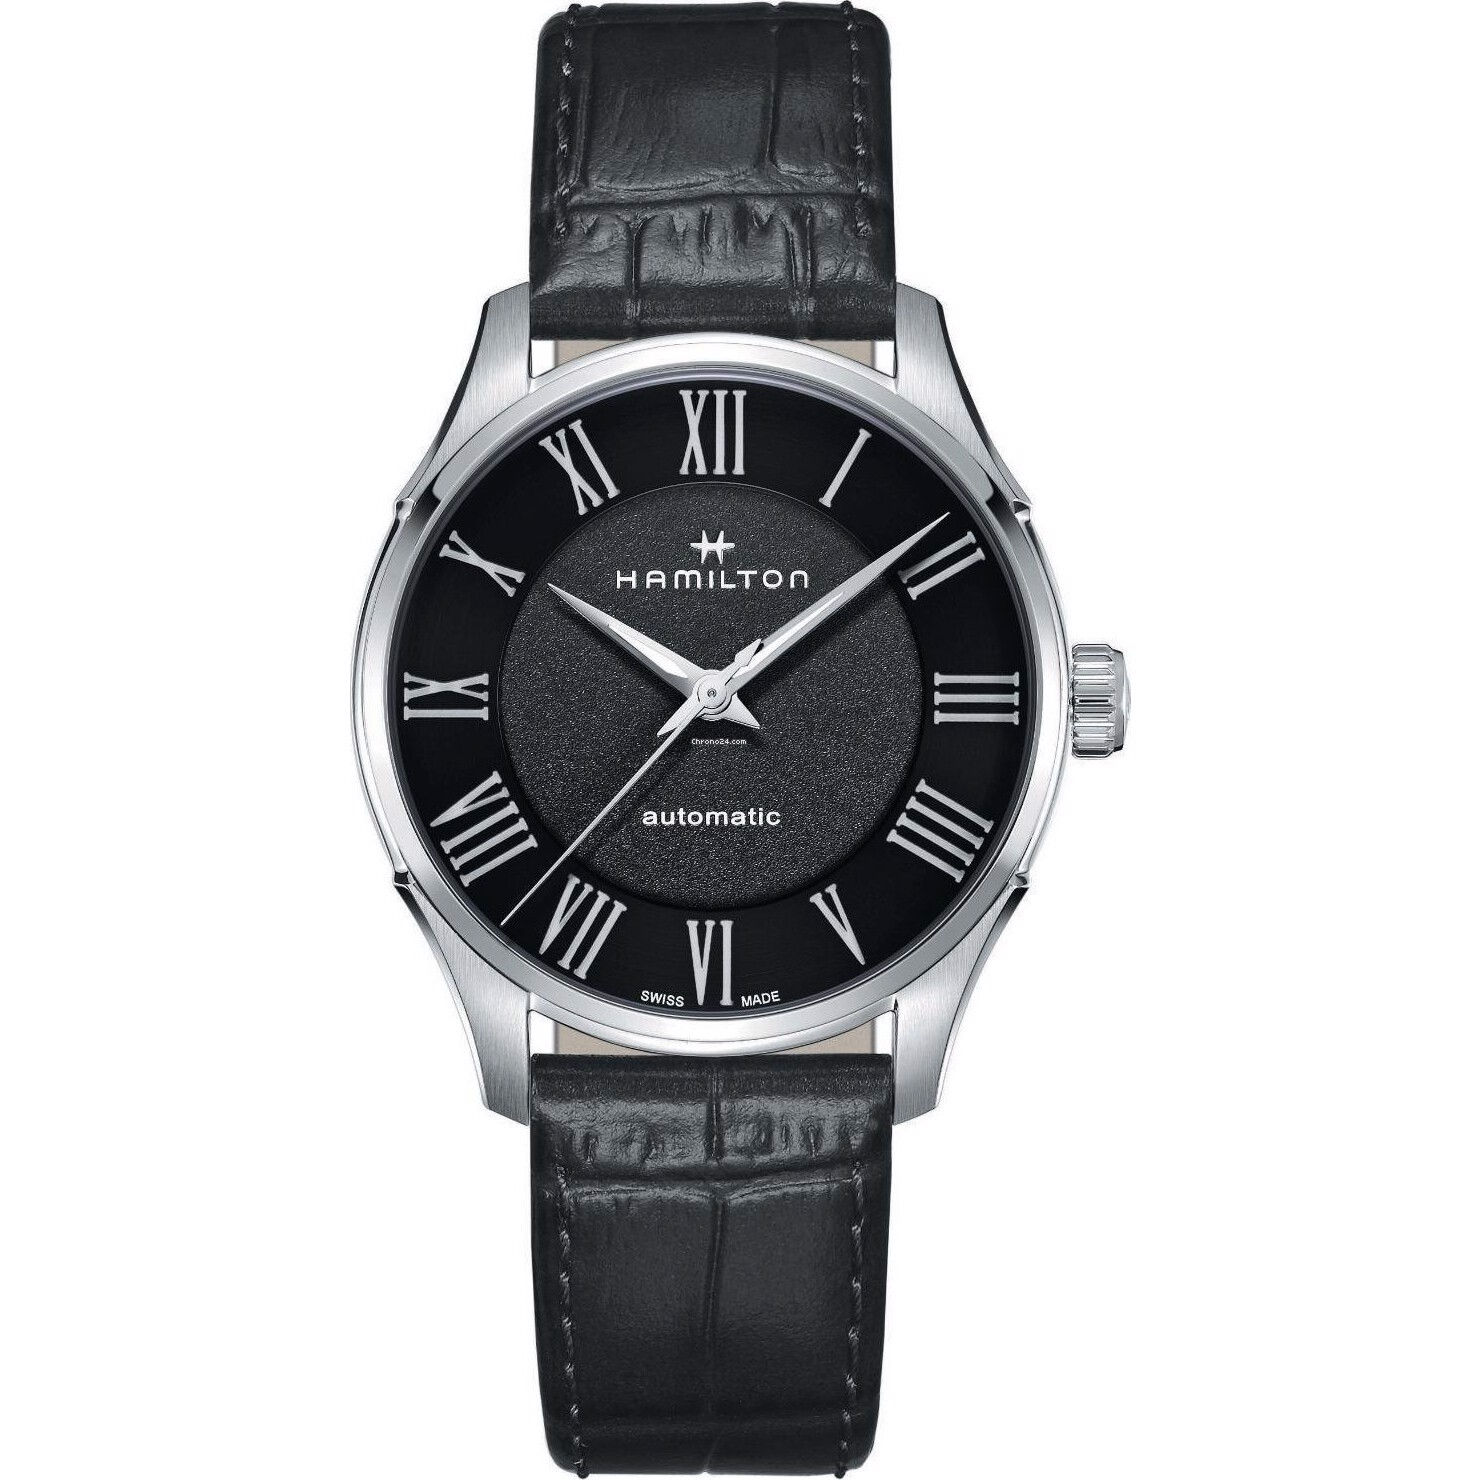 Hamilton Jazzmaster Auto Watch 40mm